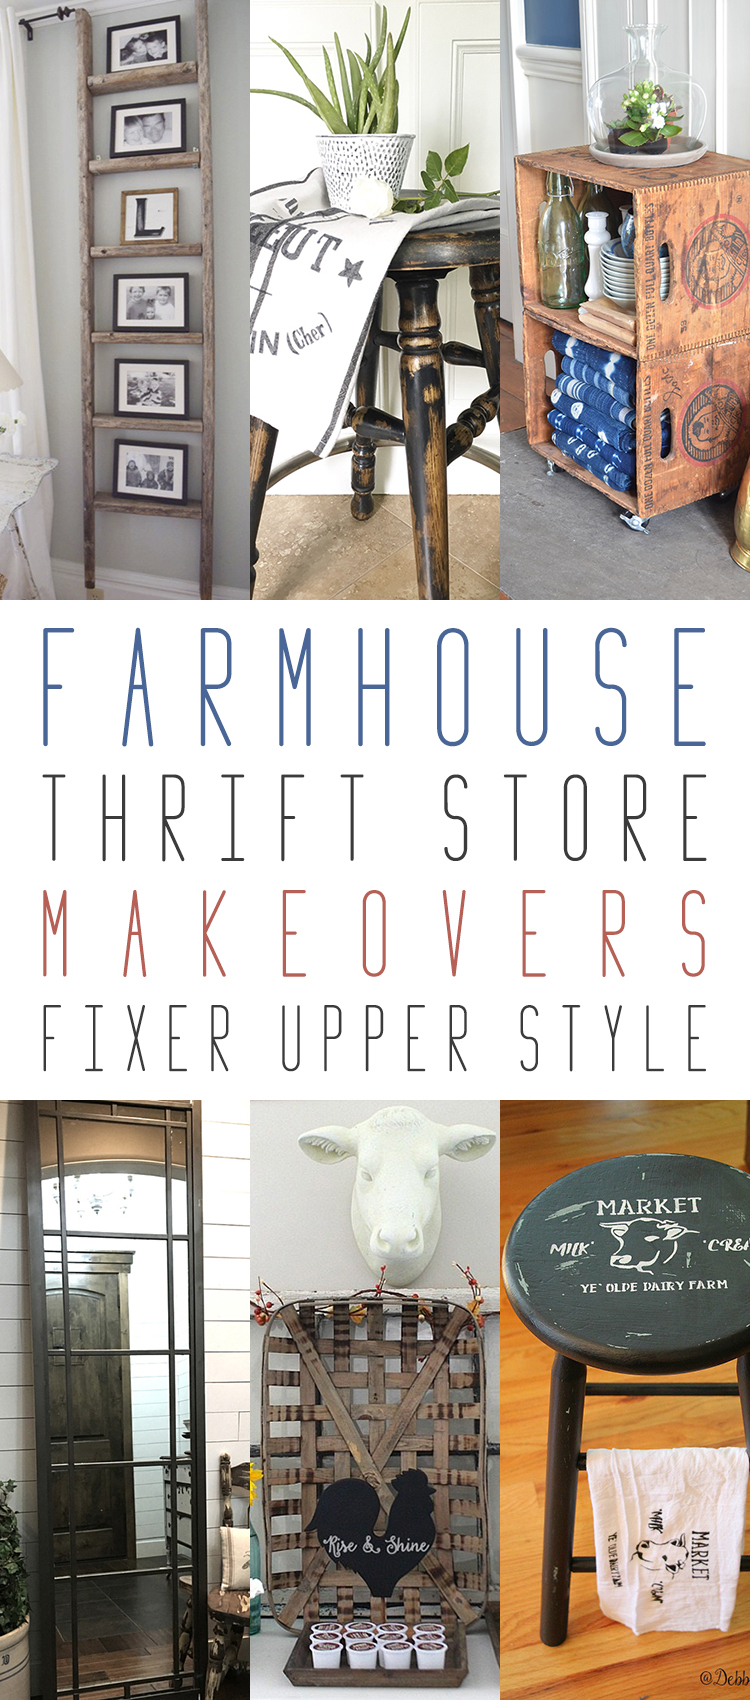 http://thecottagemarket.com/wp-content/uploads/2016/09/Thrift-TOWER-0001.jpg